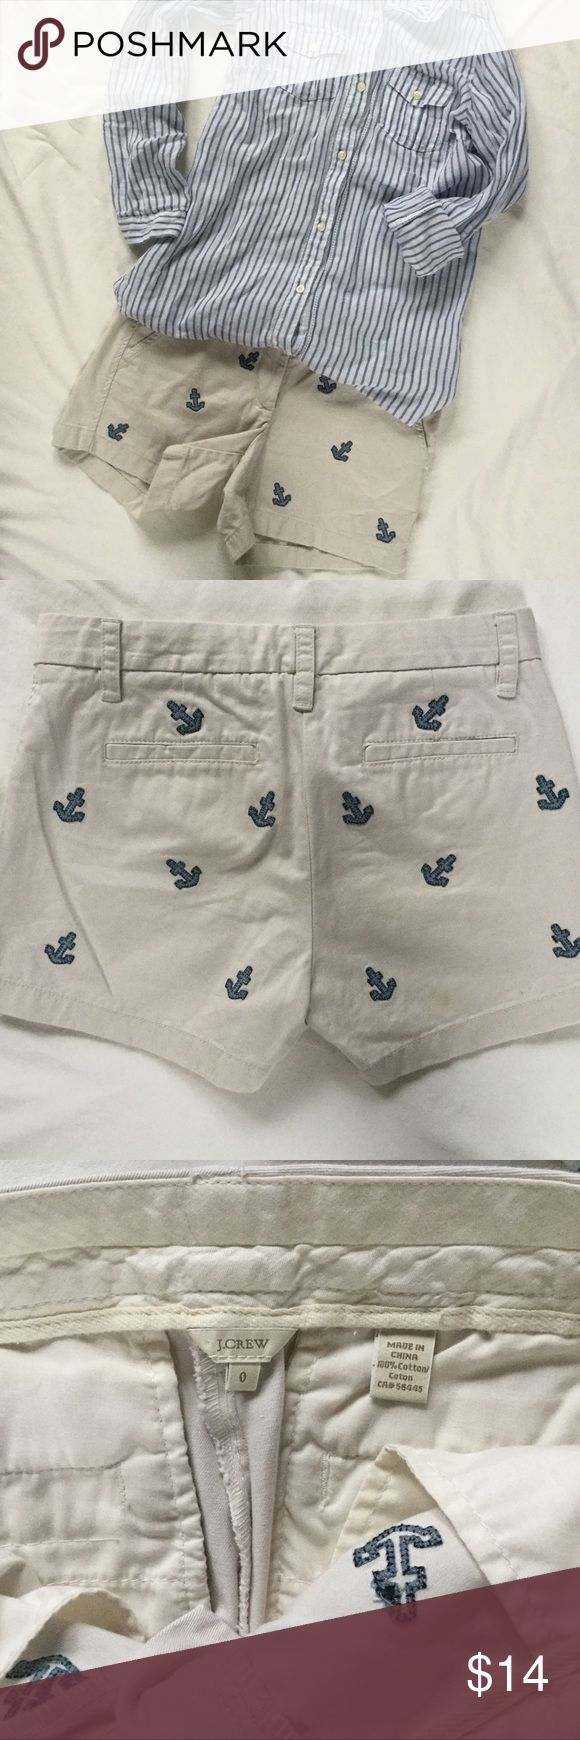 J. Crew Anchor Shorts Size 0 Good used condition J. Crew Shorts